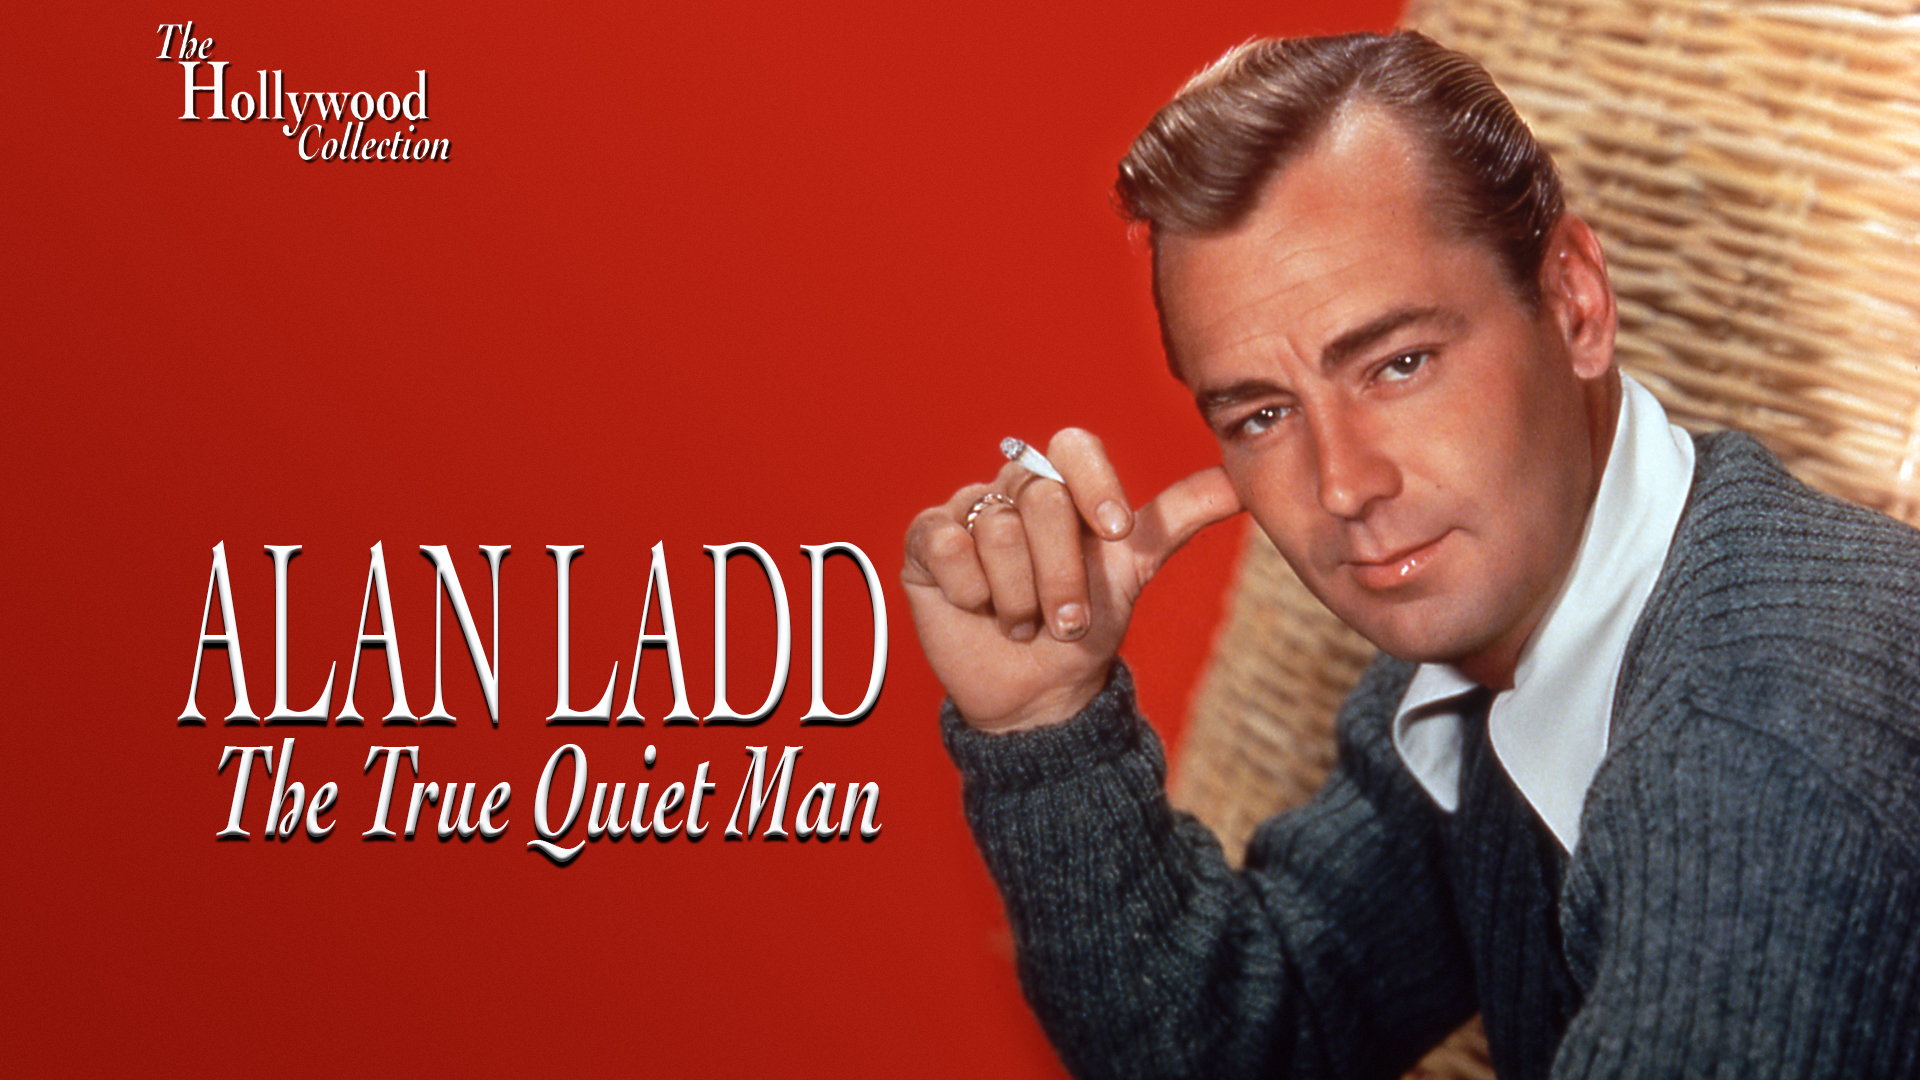 The Hollywood Collection: Alan Ladd: The True Quiet Man